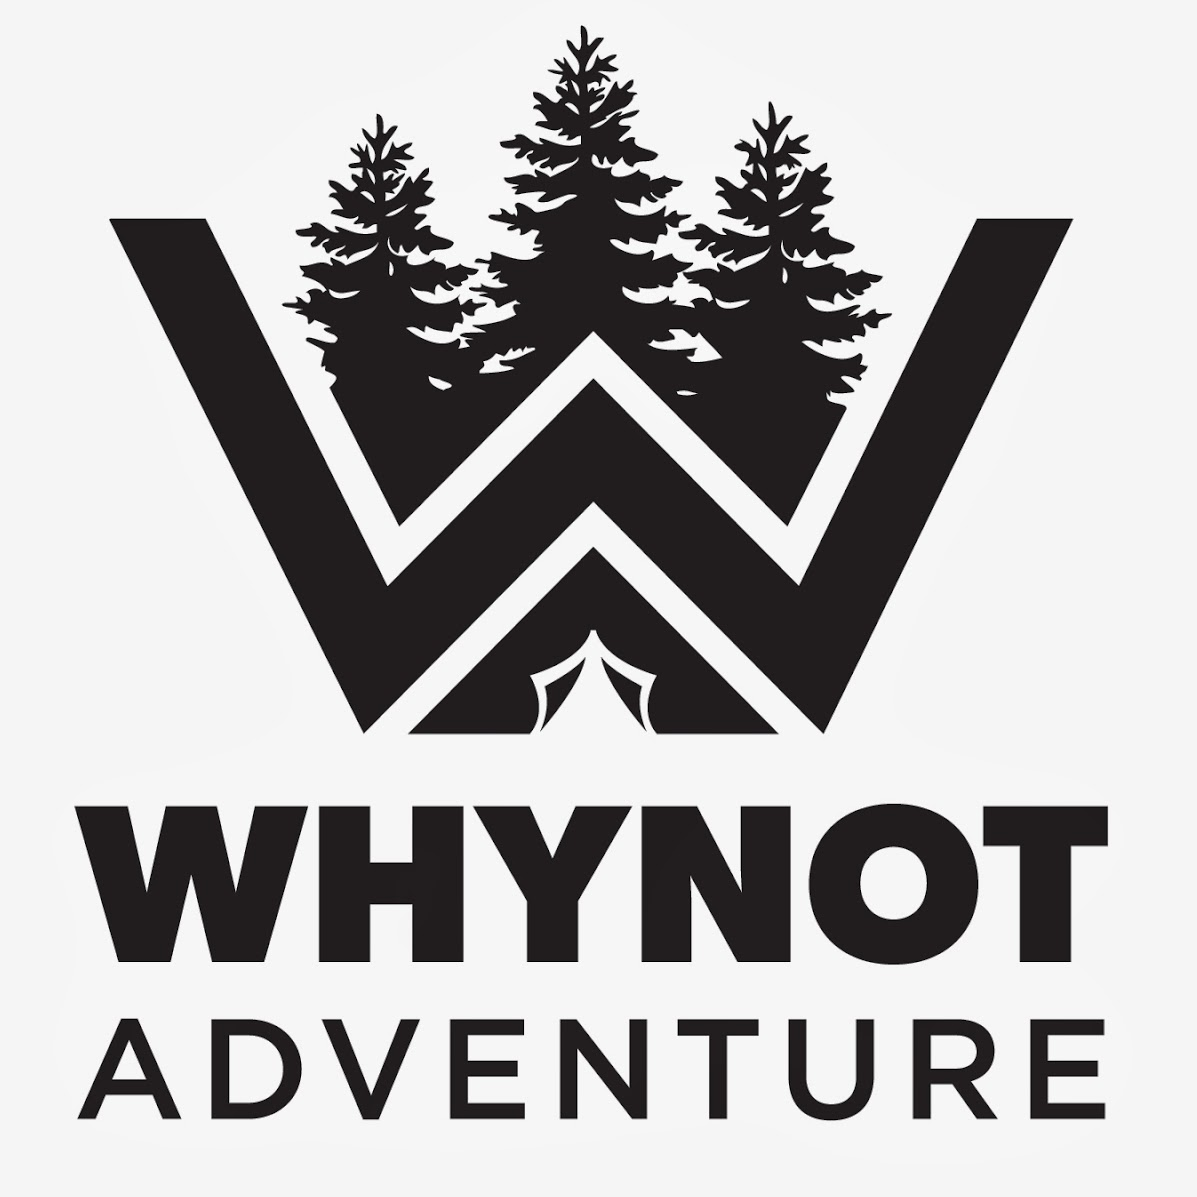 whynot-adventure-black-logo